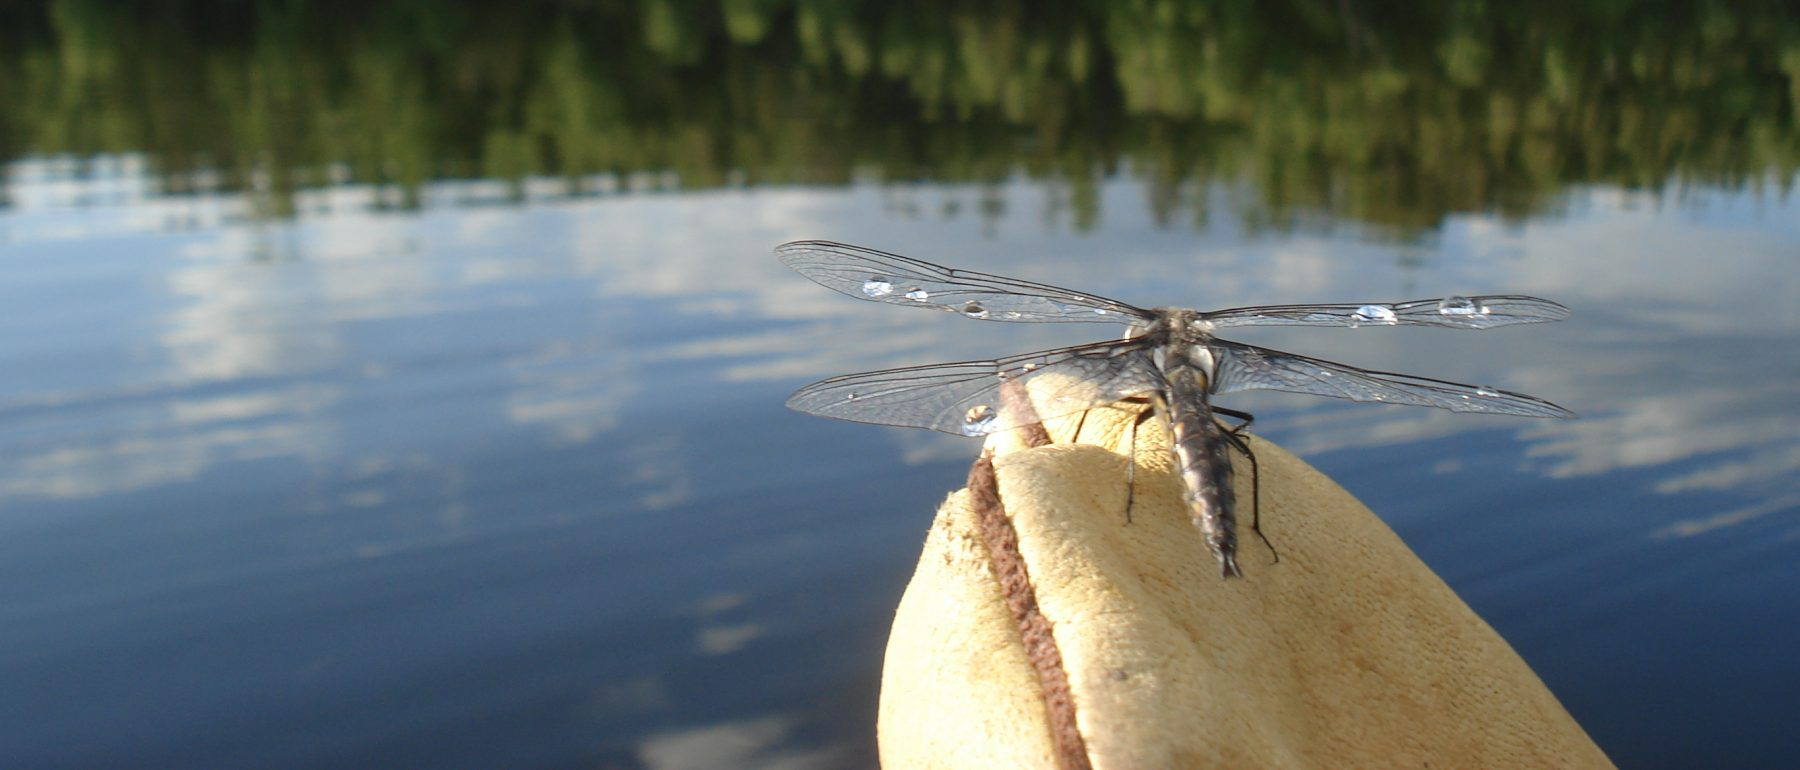 Nature dragon fly